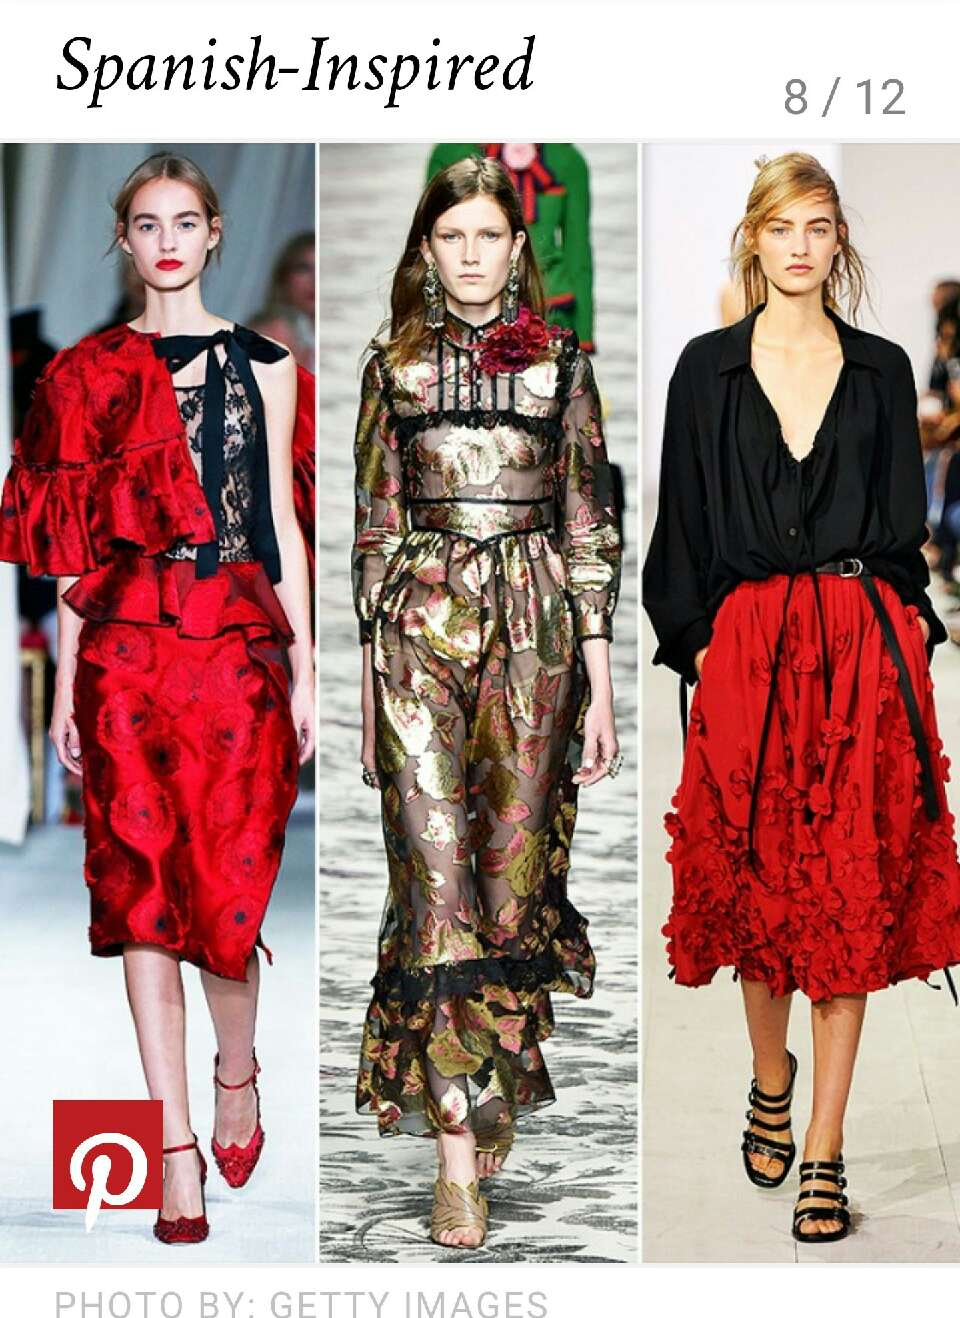 Channel your inner Matador with spring's red hot ruffles, brocade textures & 3D floral detailing